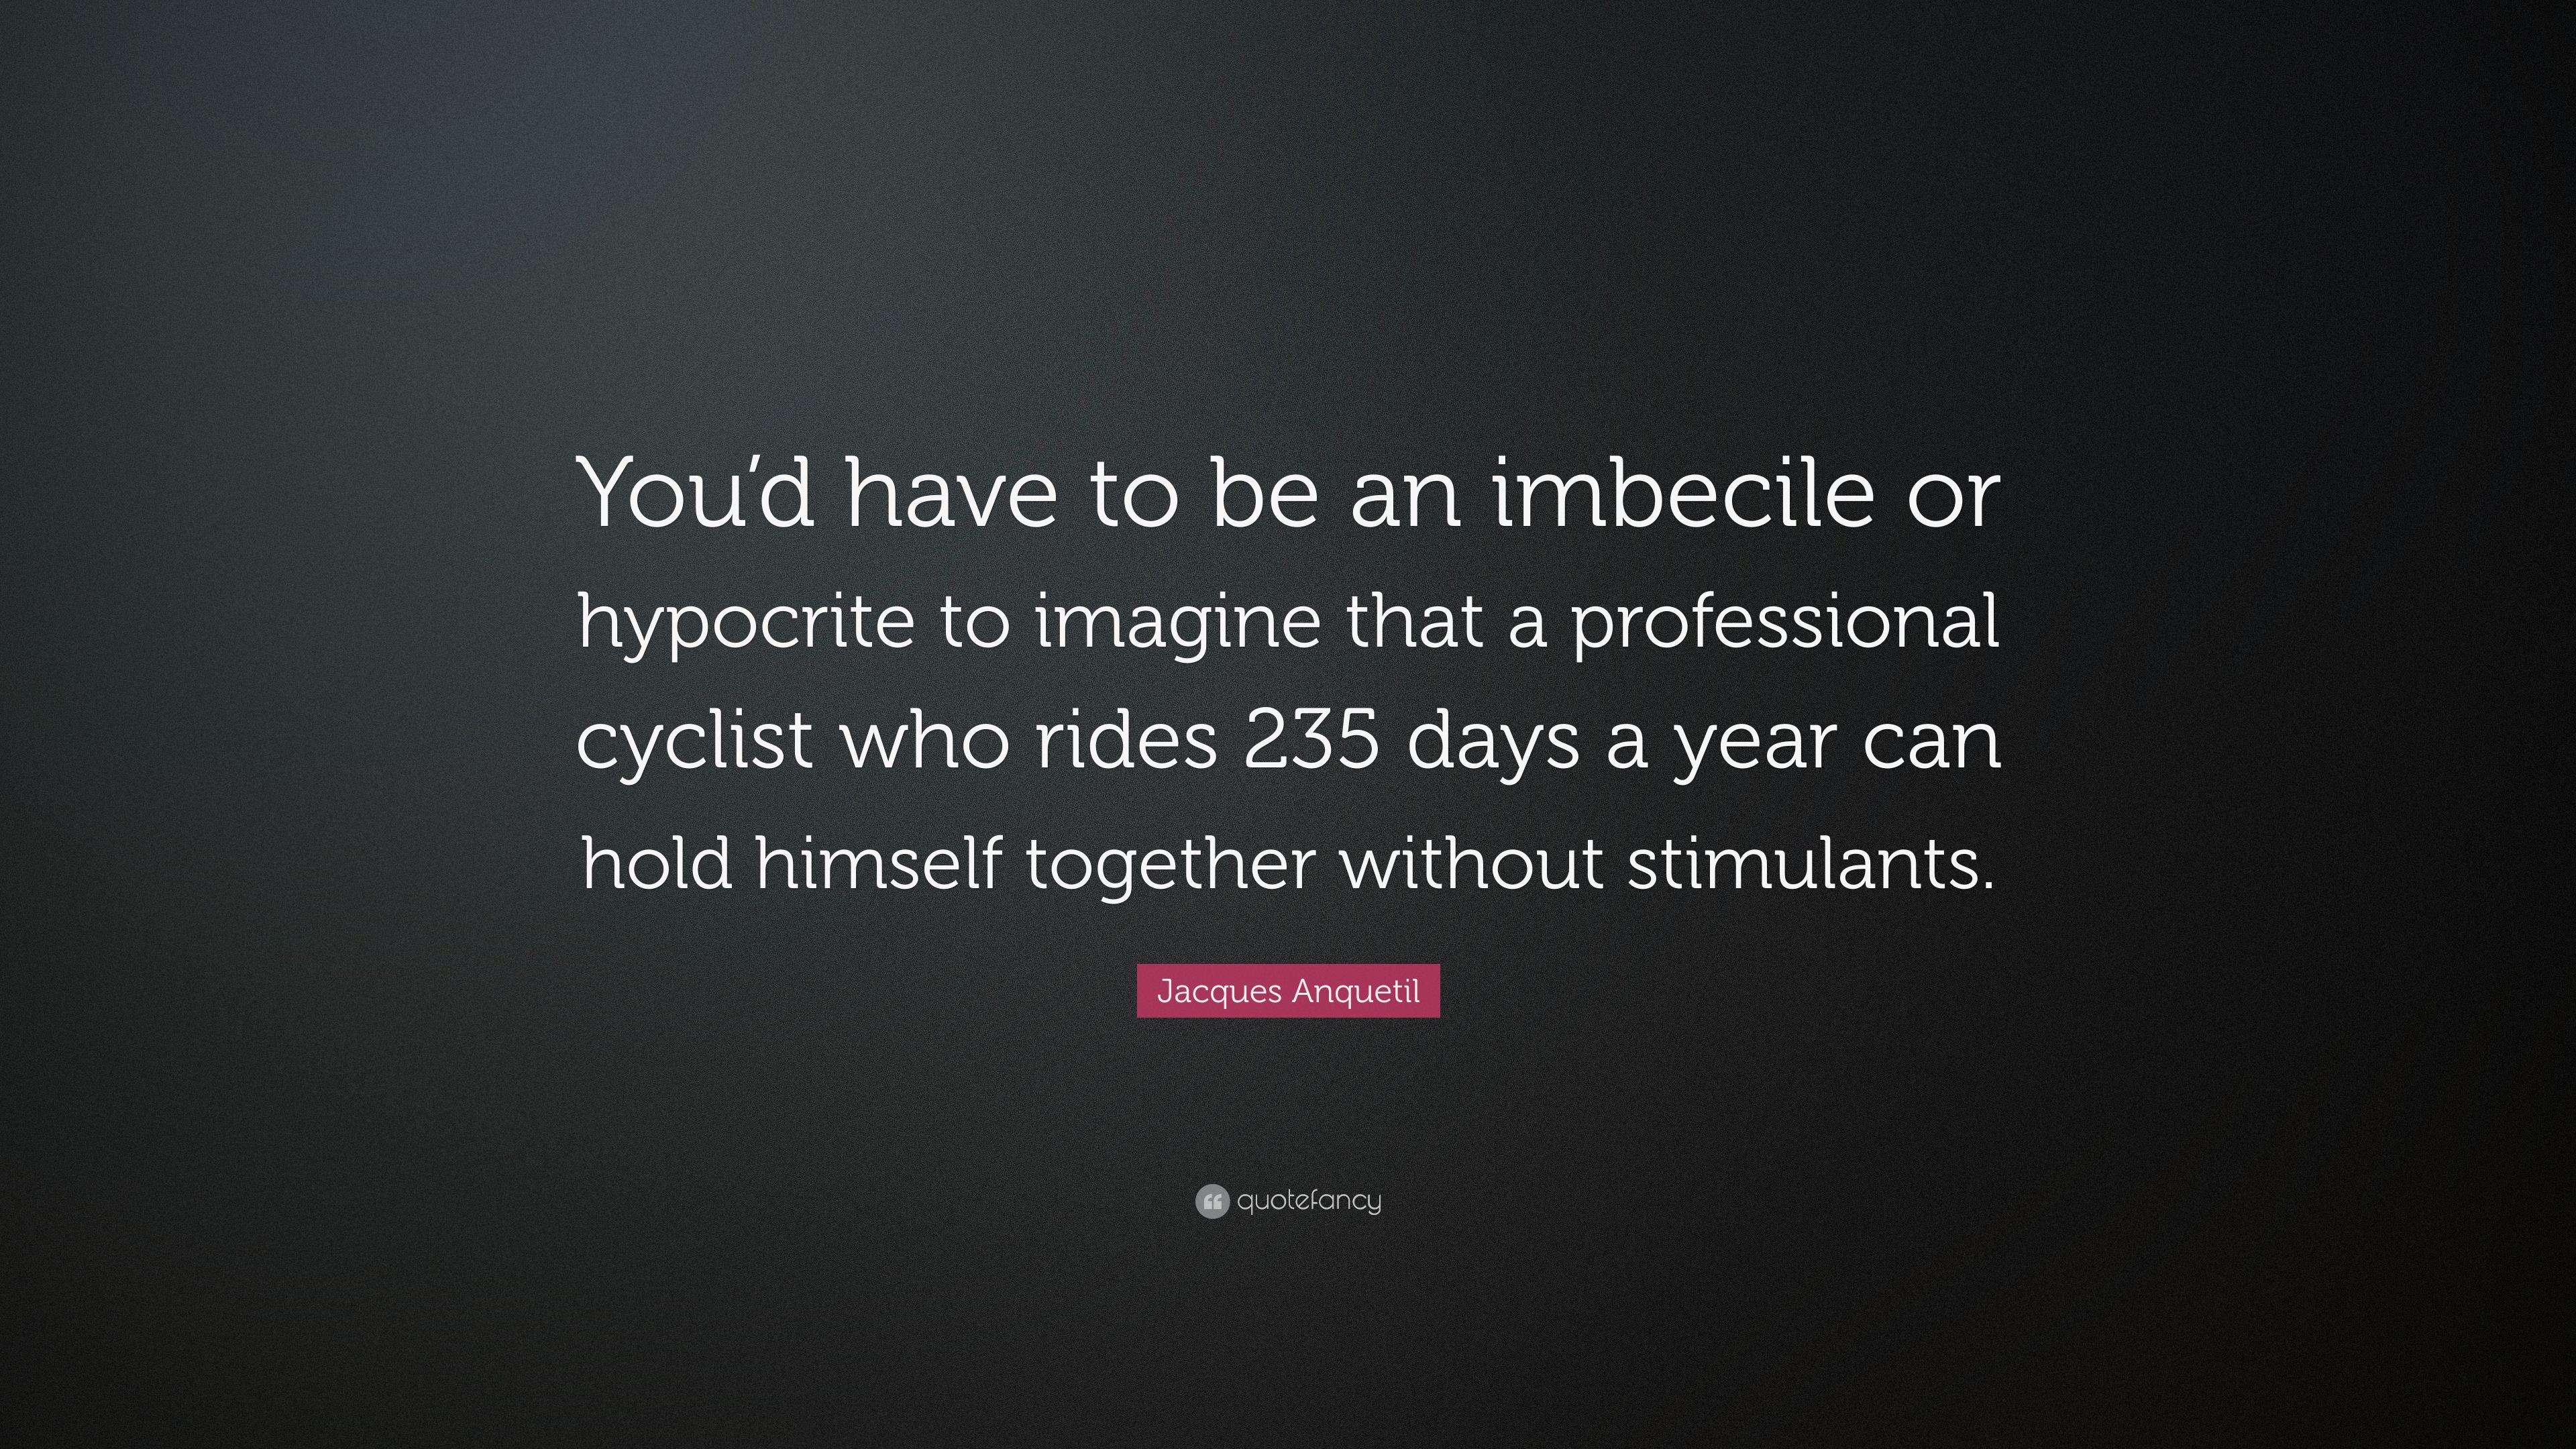 Jacques Anquetil Quote Youd Have To Be An Imbecile Or Hypocrite